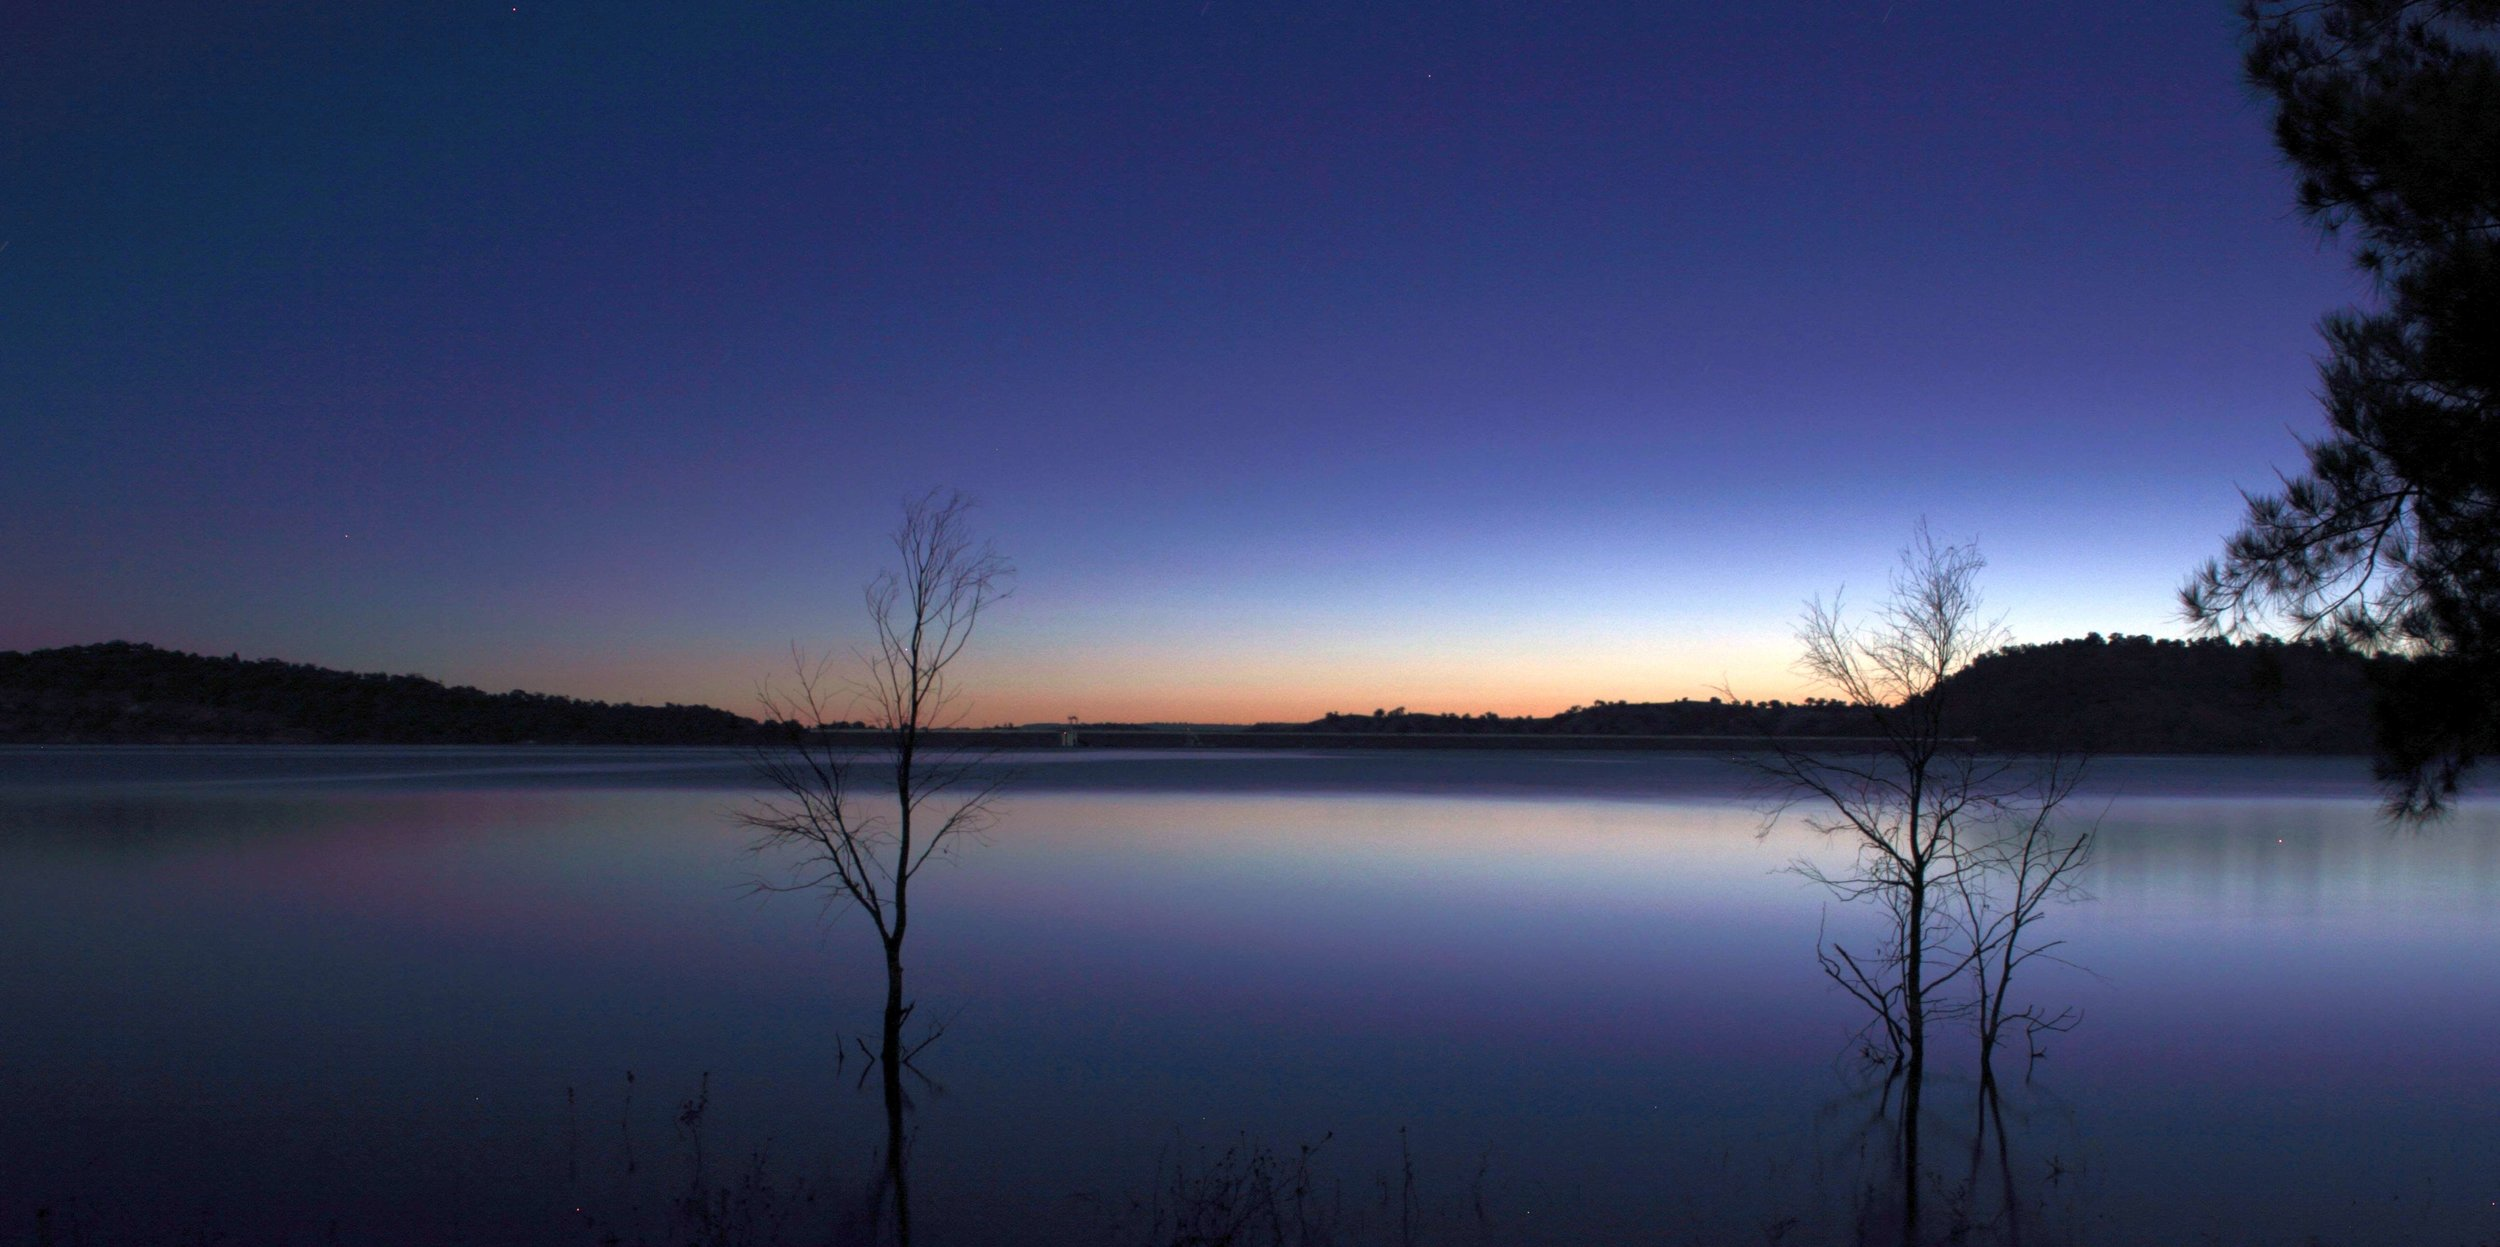 Lake_Glenbawn_at_late_sunset,_April_2013.jpg